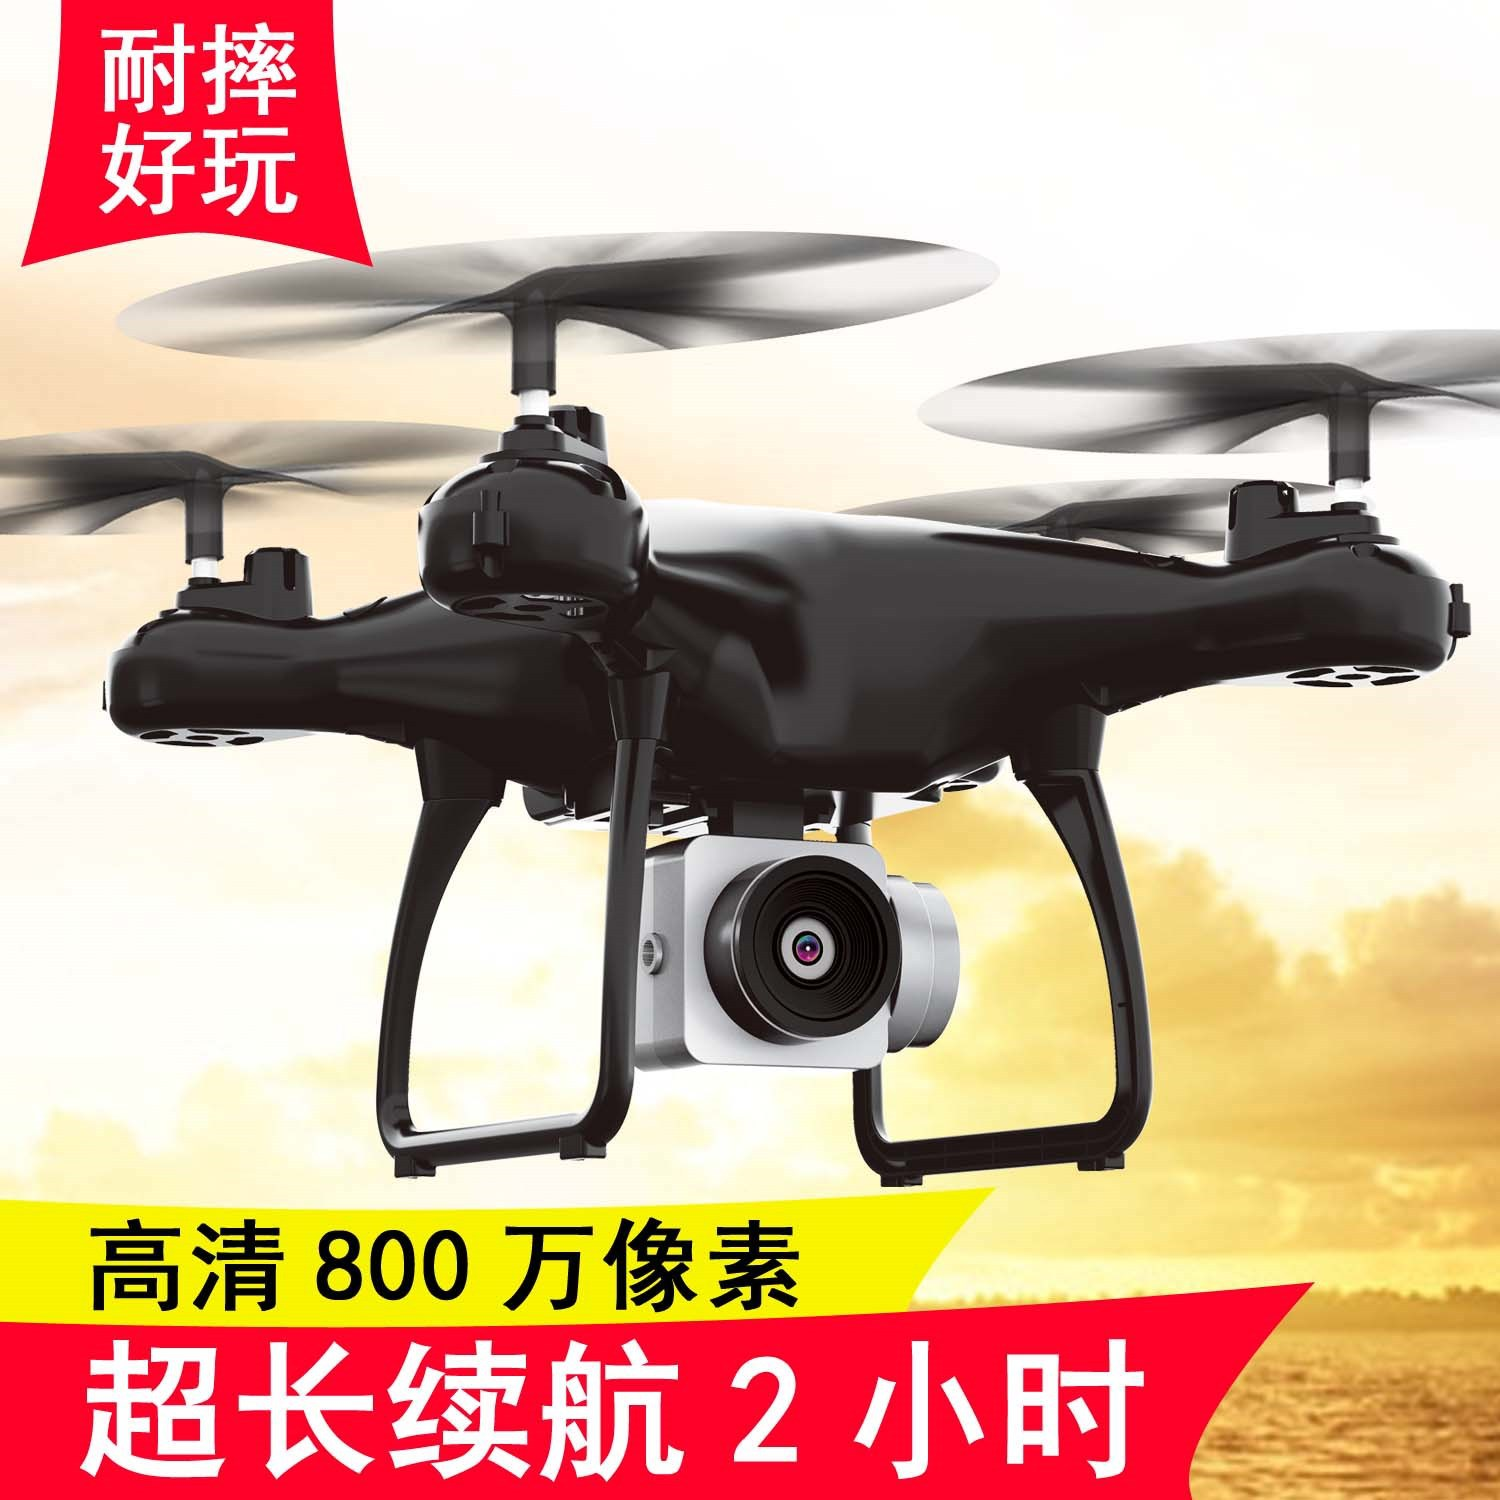 Unmanned Aerial Vehicle Aerial Photography High definition Profession Ultra long Life Battery Quadcopter Drop resistant Charging|  - title=